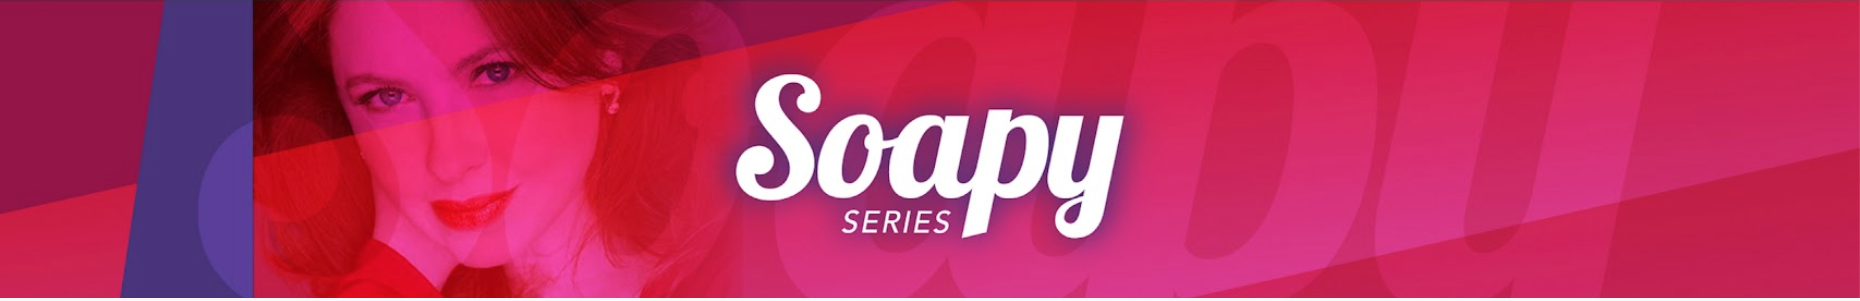 Soapy YouTube channel illustrative banner